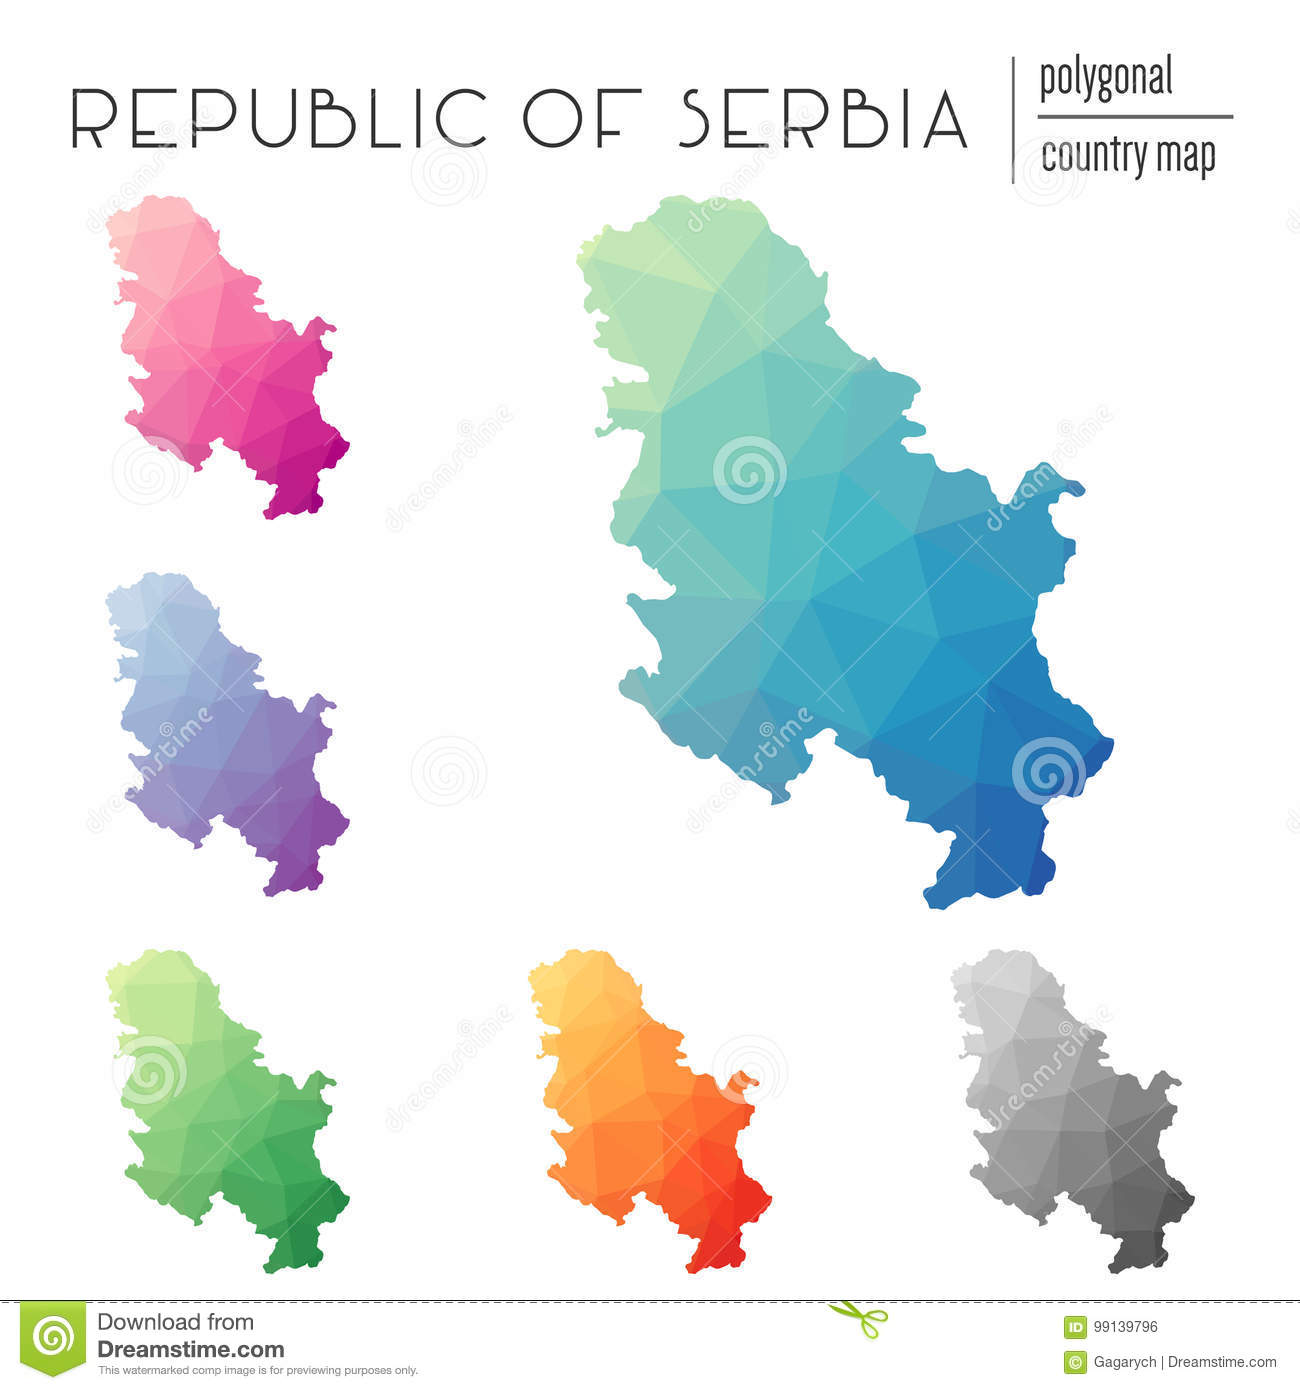 Set Of Vector Polygonal Serbia Maps. Stock Vector ... Serbia Country Map on dominica country map, british virgin islands country map, greenland country map, uzbekistan country map, montenegro country map, czech country map, republic of georgia country map, hungarian country map, serbian flag map, gabon country map, vatican country map, burkina faso country map, togo country map, kyrgyzstan country map, world map, u.s. country map, georgia country on a map, turkestan country map, curaçao country map, gambia country map,